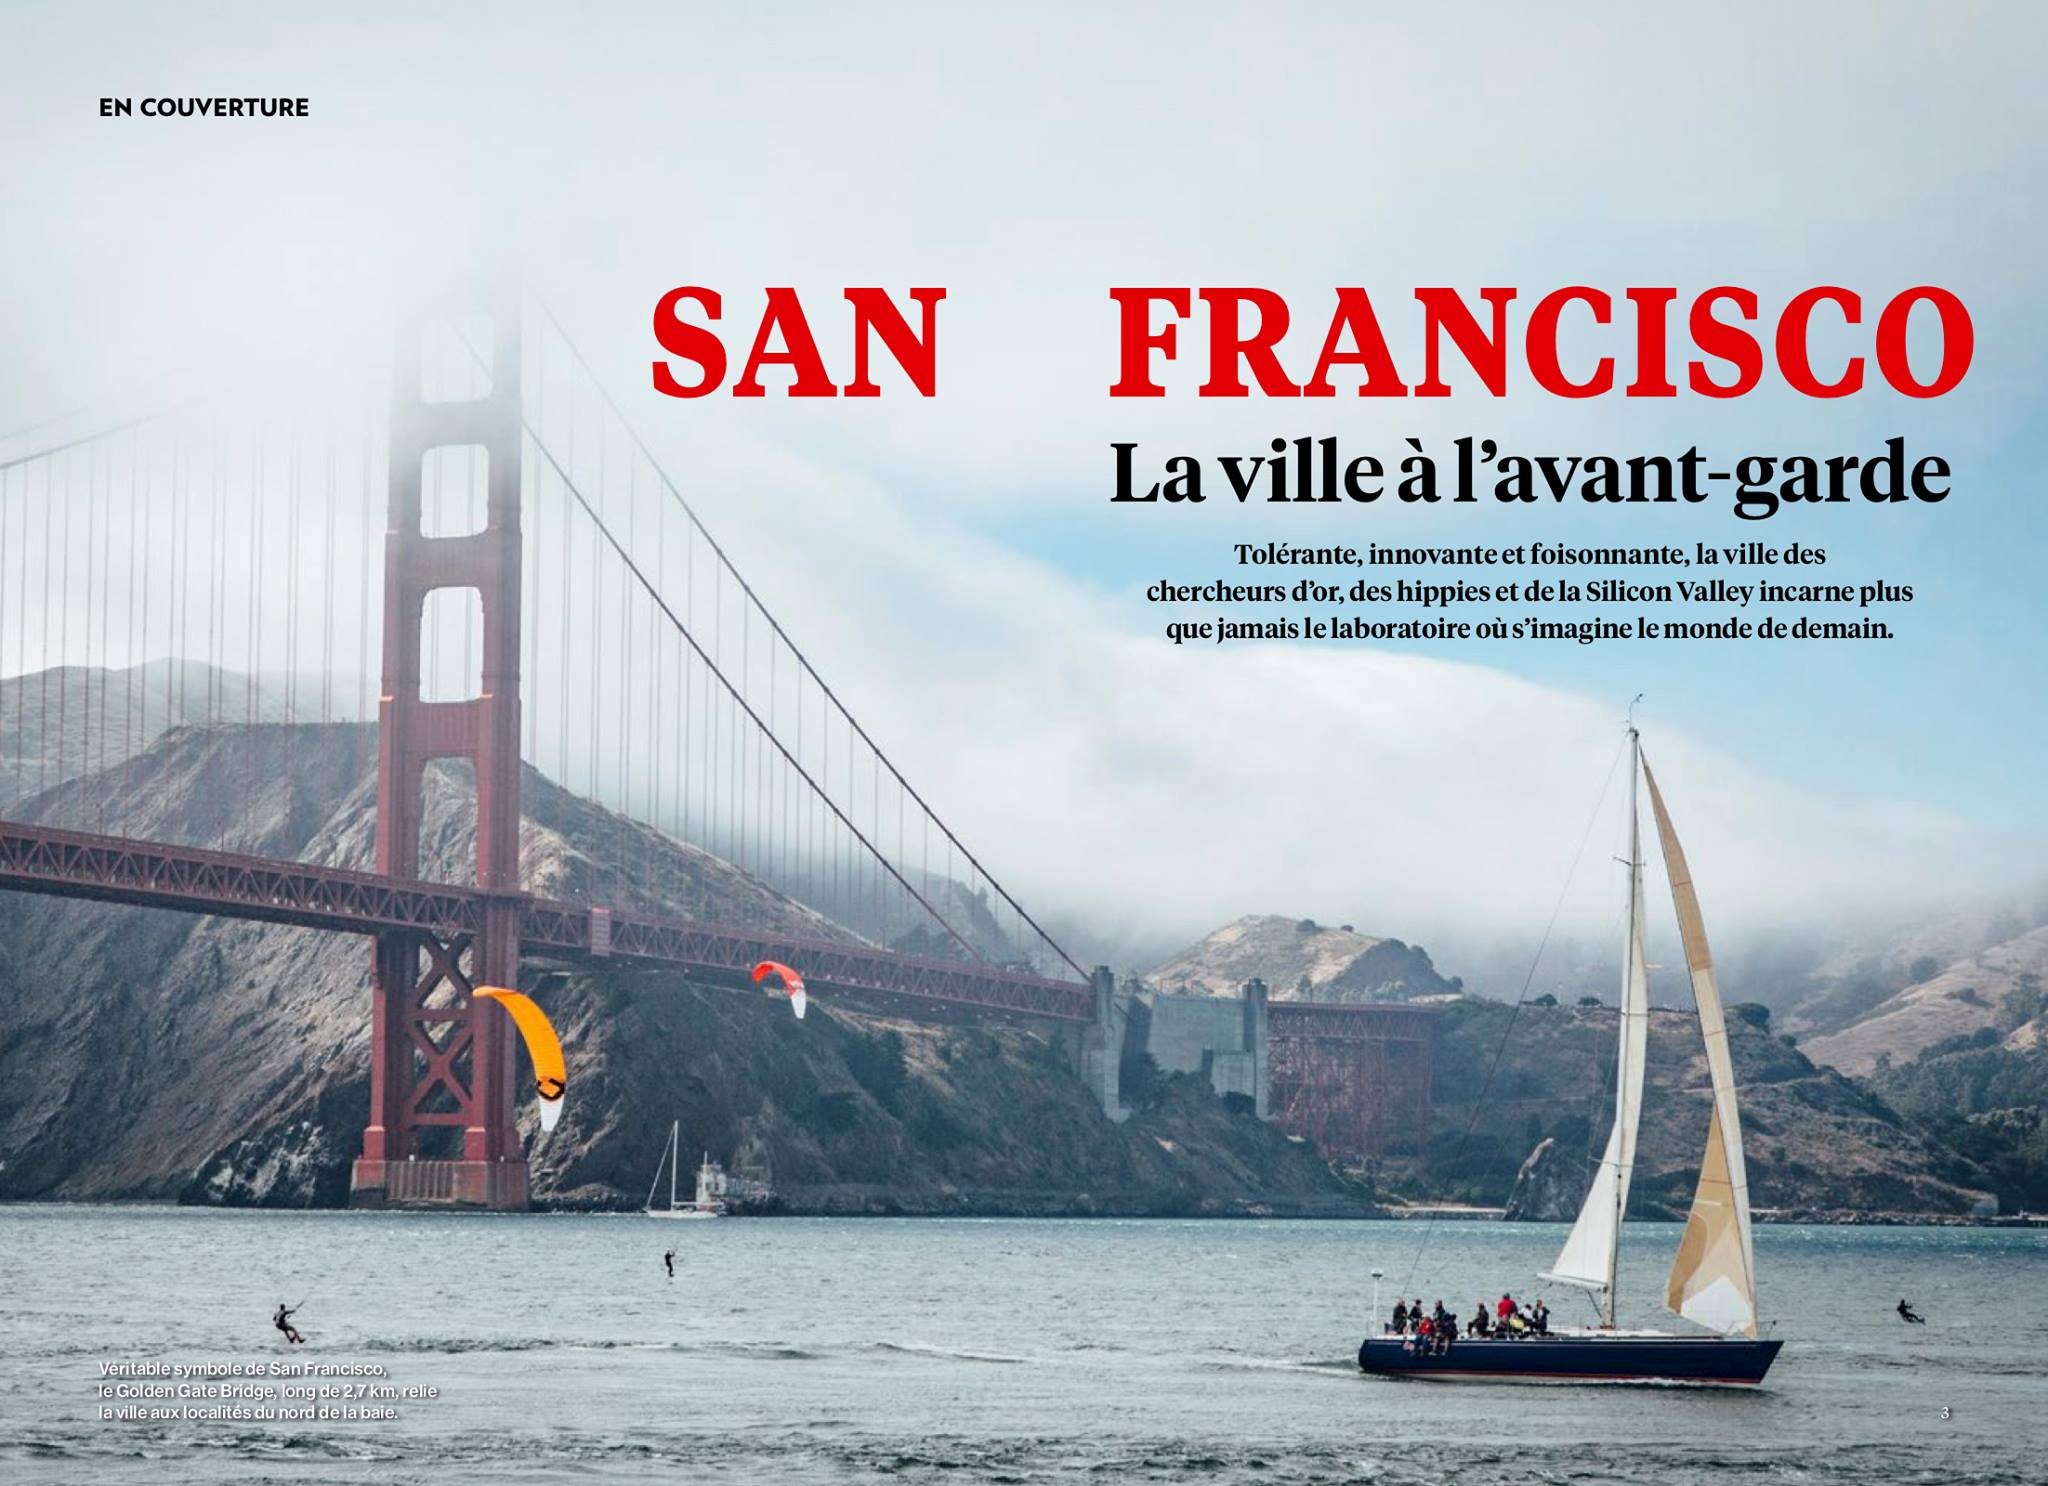 National Geographic France / Cyril Marcilhacy